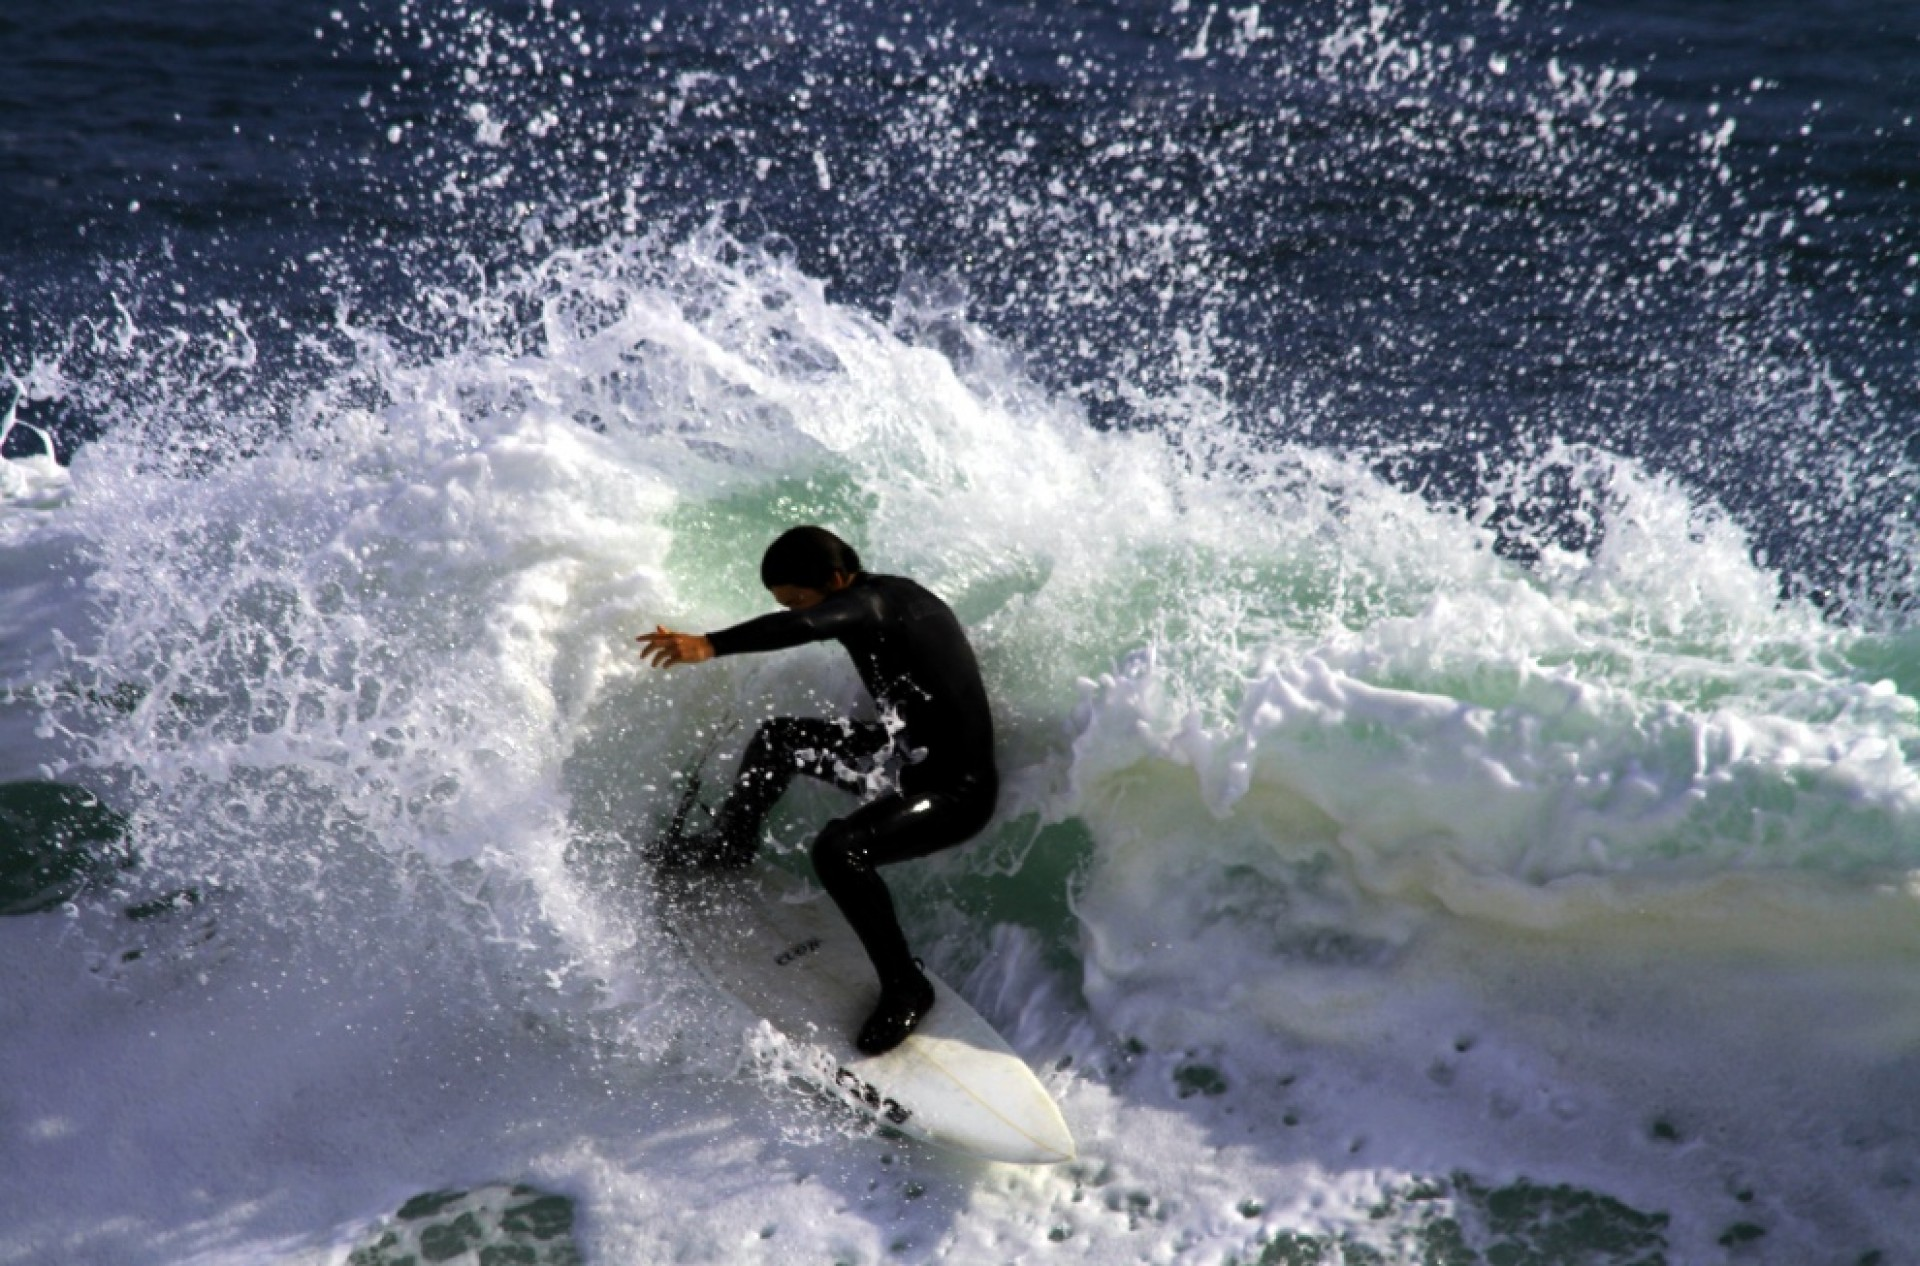 Bruce Anderson's photo of Steamer Lane